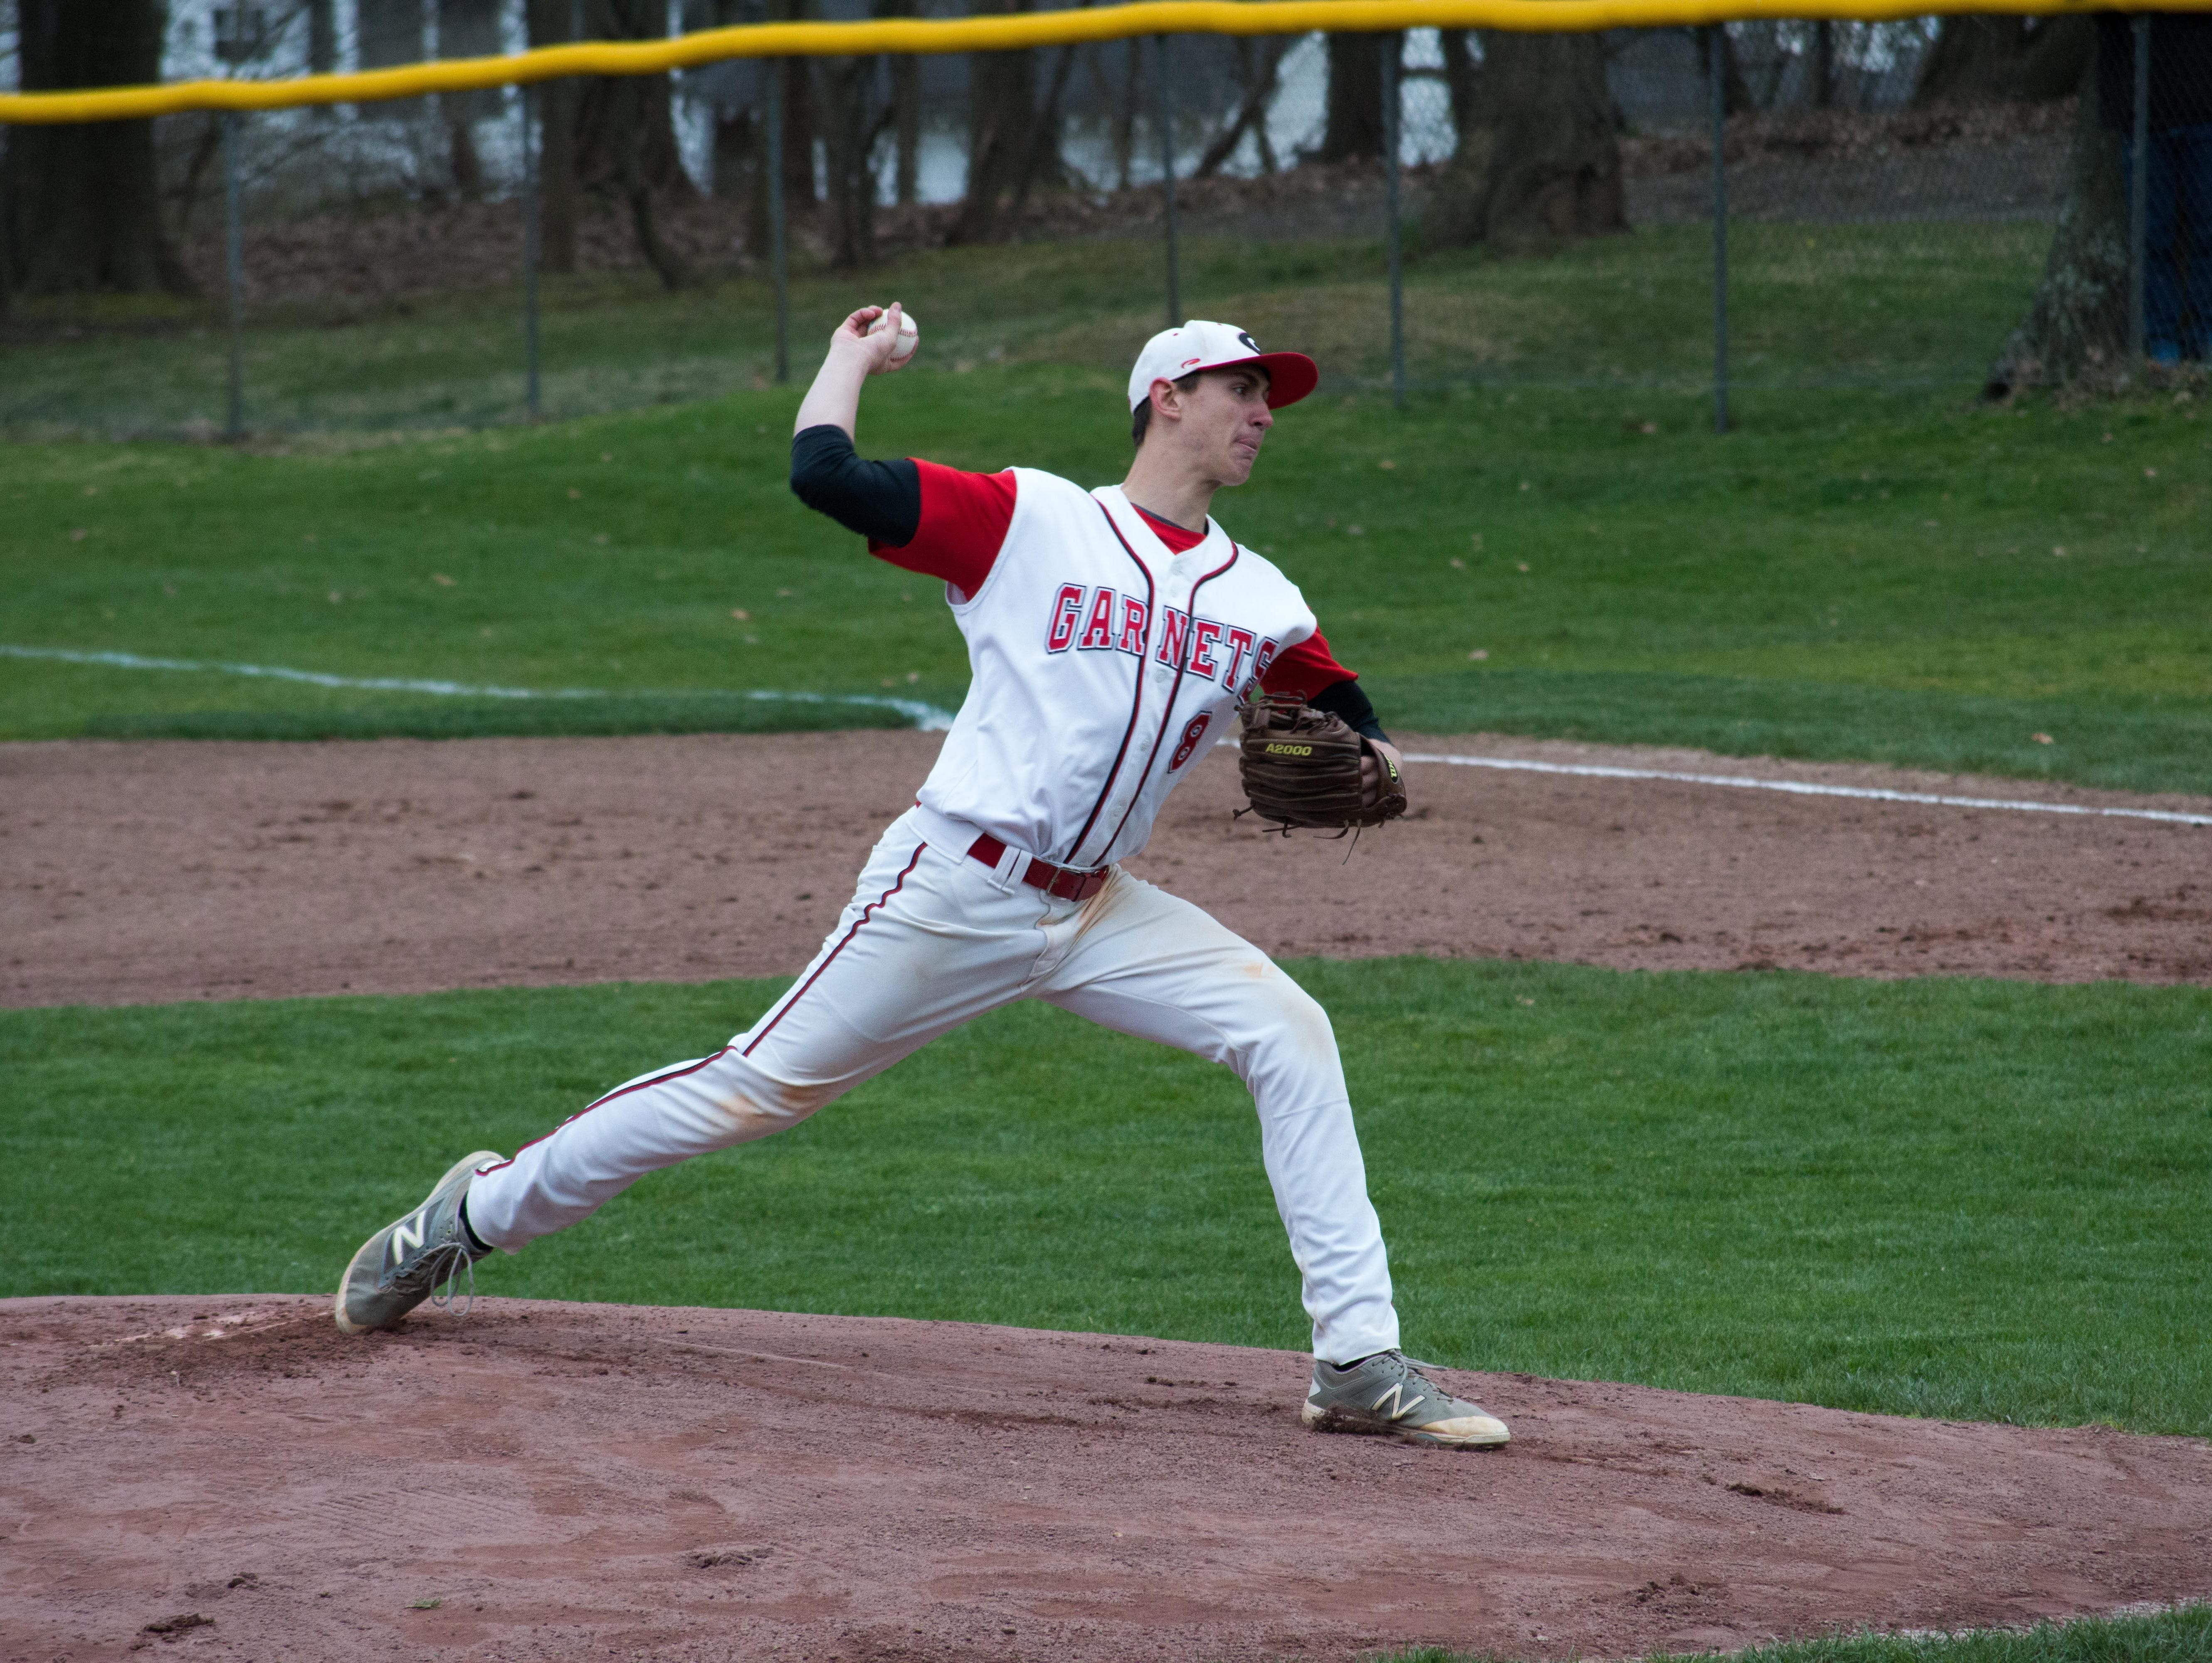 Rye pitcher George Kirby delivers a pitch in the first inning of Friday's game against Albertus Magnus at Disbrow Park in Rye.